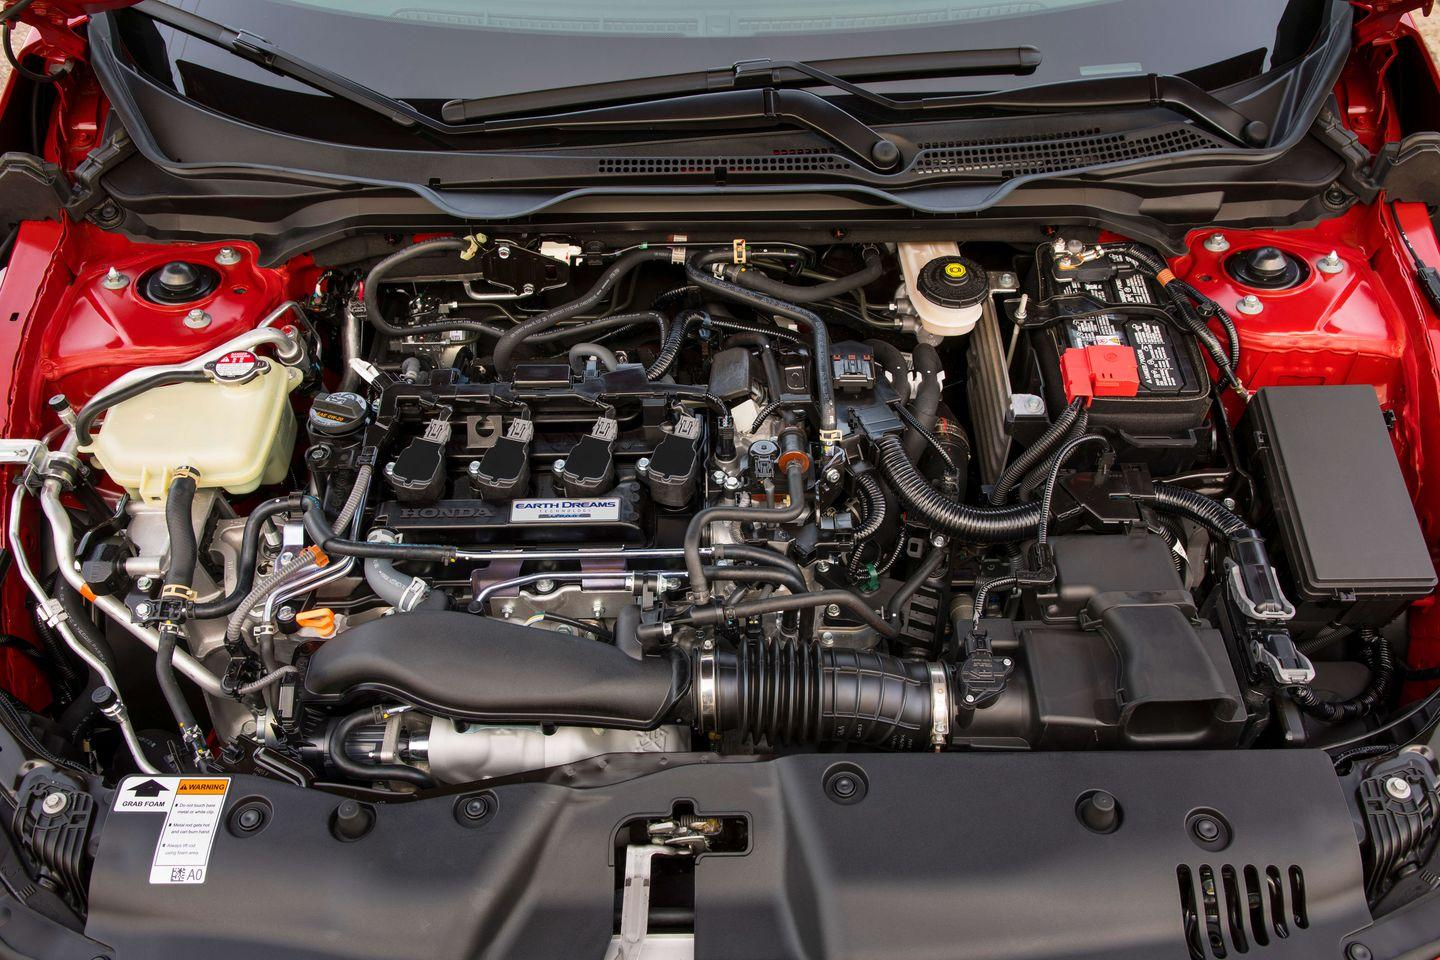 """<p>Let's get this out of the way up front: Honda's latest Civic Si lacks VTEC, otherwise known as variable valve timing and lift electronic control. <a href=""""https://www.caranddriver.com/features/g15381097/kicking-in-the-history-of-honda-si-cars-in-america/"""" rel=""""nofollow noopener"""" target=""""_blank"""" data-ylk=""""slk:In Civic Si cars dating back"""" class=""""link rapid-noclick-resp"""">In Civic Si cars dating back</a> to the late 1990s, VTEC has famously registered as a character switchover at higher engine speeds, when a more aggressive cam profile took over and gave the four-cylinders a rowdy bawl and more power. In its place, the 2019 Civic Si's 1.5-liter engine uses a turbocharger and direct fuel injection to kick out 205 horsepower—exactly the same amount as its VTEC-equipped, non-turbocharged, 2.0-liter predecessor.</p>"""